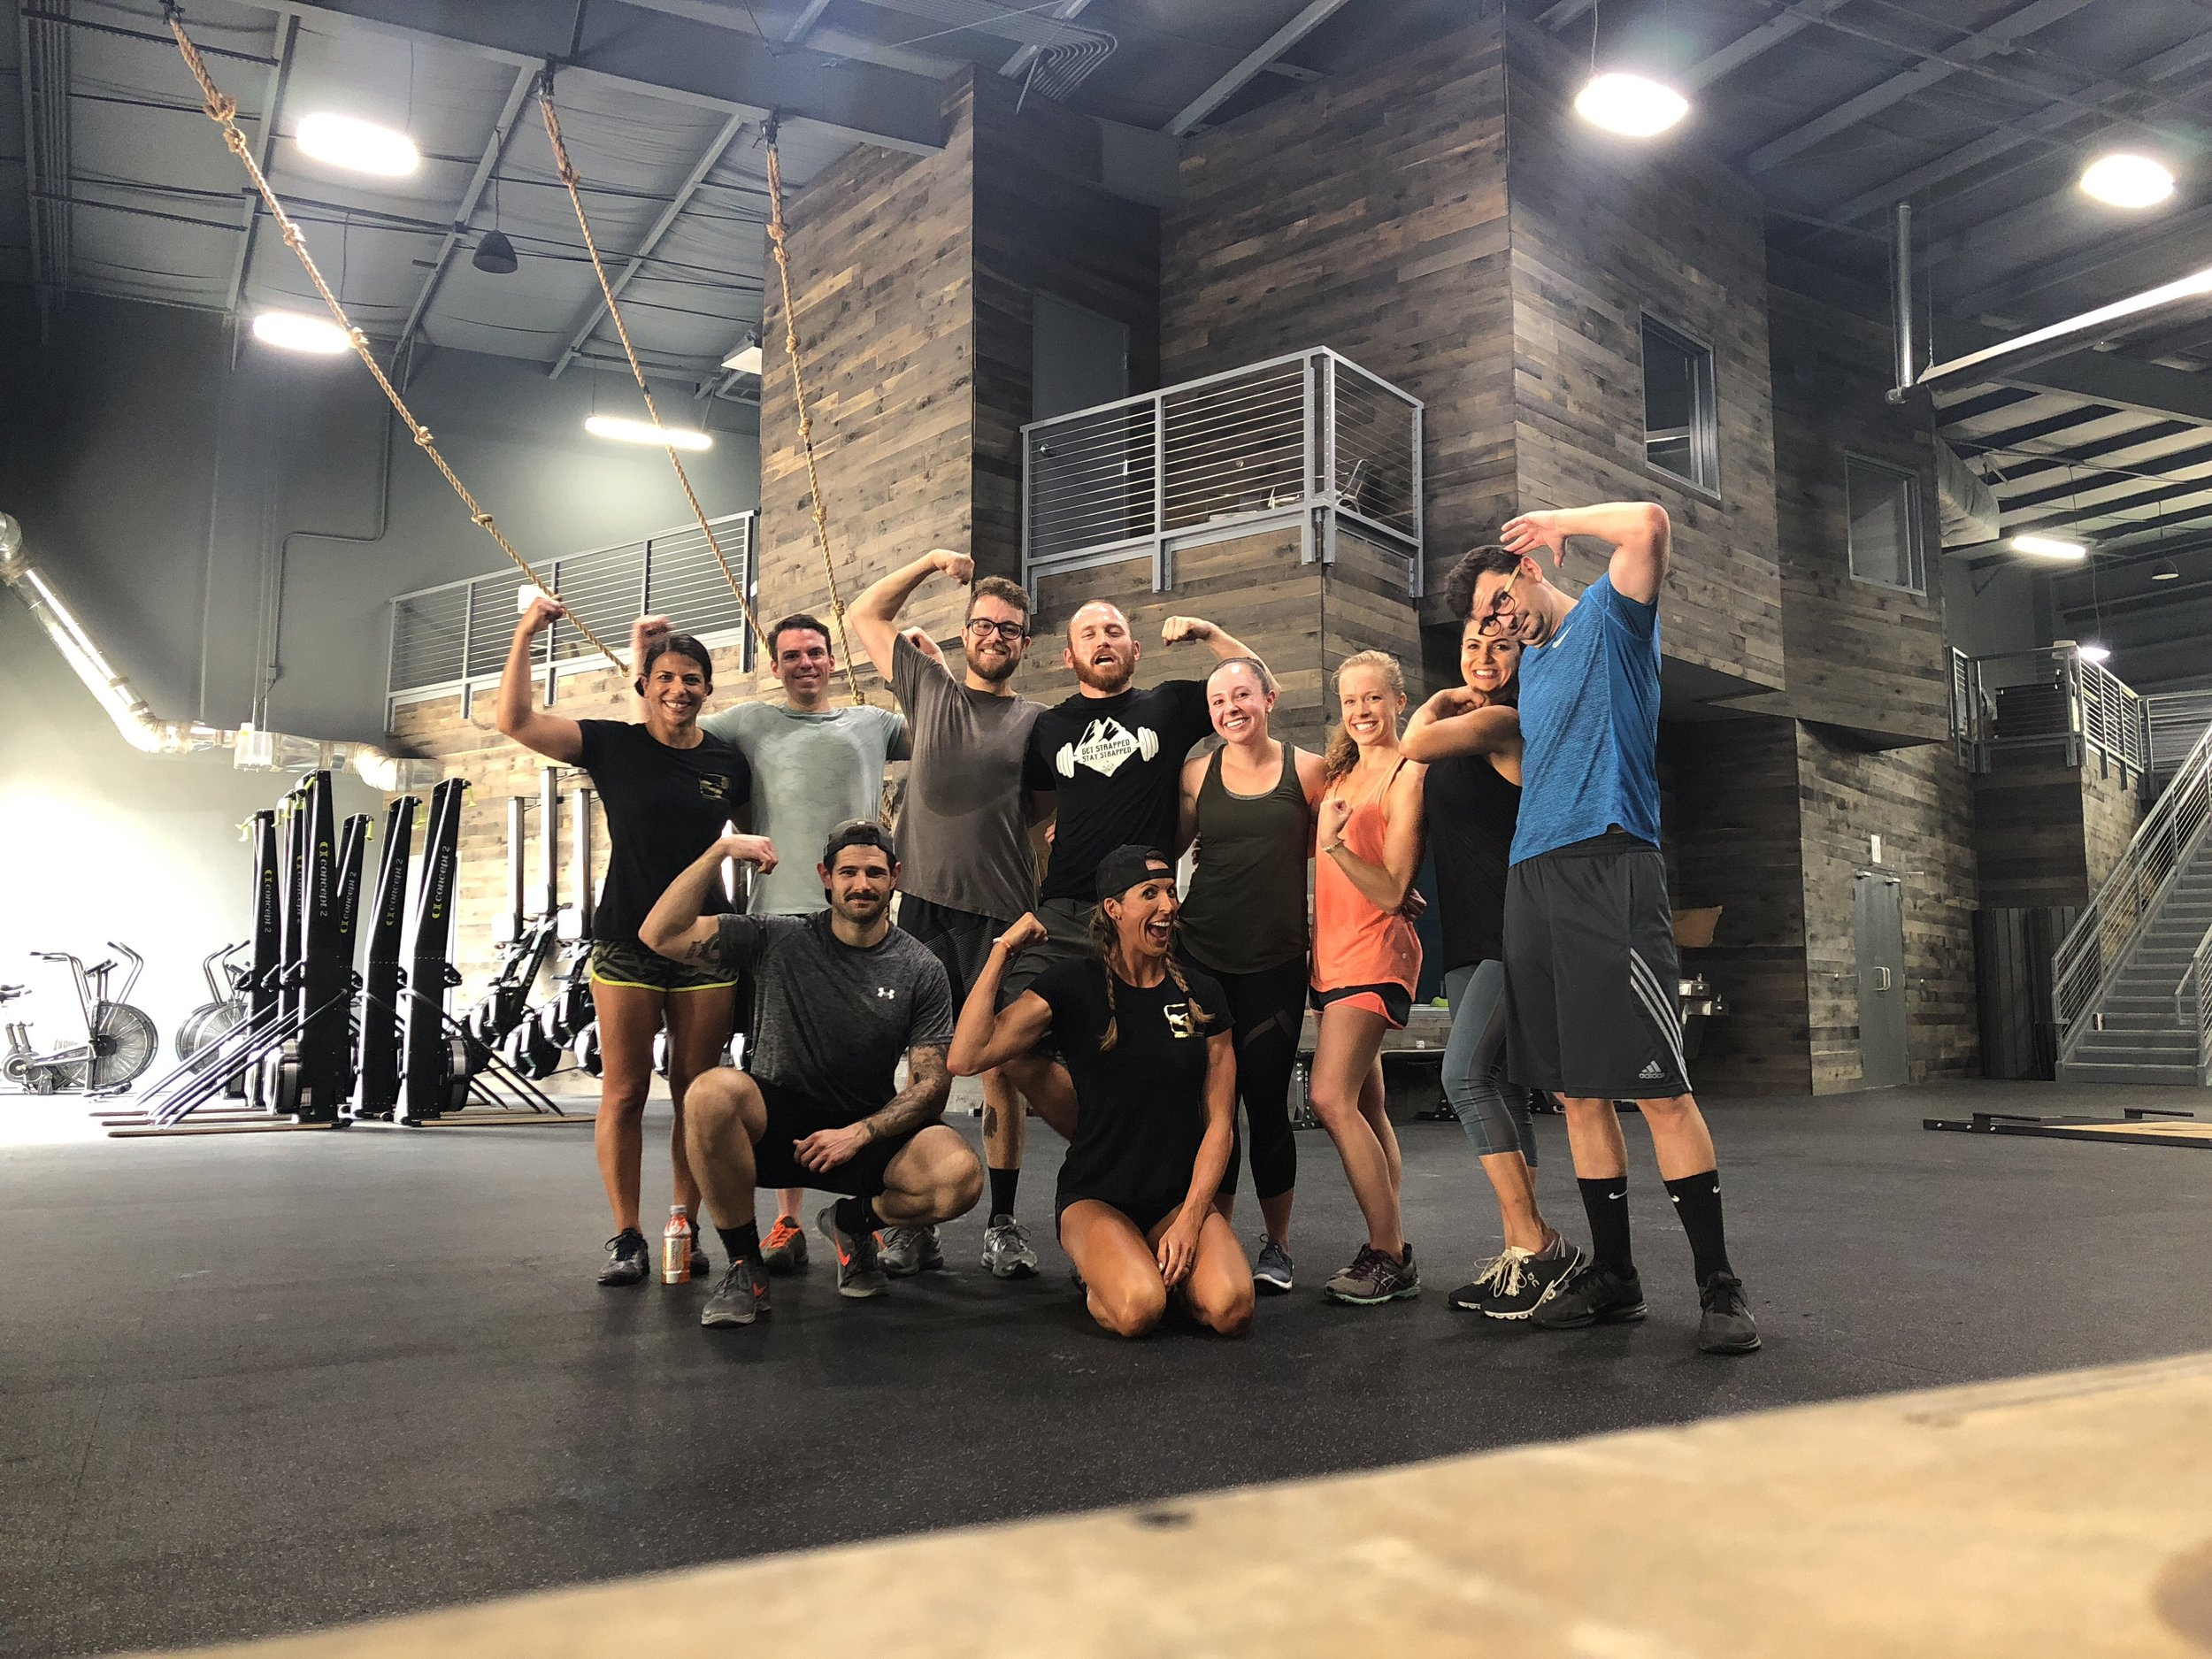 Past Event: 8/19/18 - STELLAR workout session at this month's Featured Gym, CrossFit Pushin Weight! The squad threw down with a Team Challenge... teams of two tackled the following workout with a 30 minute time cap. Part 1) Ascending Ladder - 1.2.3.4.5.6.7.8.9.10 Strict Barbell Press & 2.4.6.8.10.12.14.16.18.20 of a Kettlebell Goblet Squat. Part 2) AMRAP with 10 reps each of the following: parallette dips, box jumps, weighted sit ups, 10 calories on the assault bike, and v-ups... HUGE thanks to Coach Emine for such a kick-ass workout as well as Coach Ashley Jenkins of CFPW8 for having out our squad!